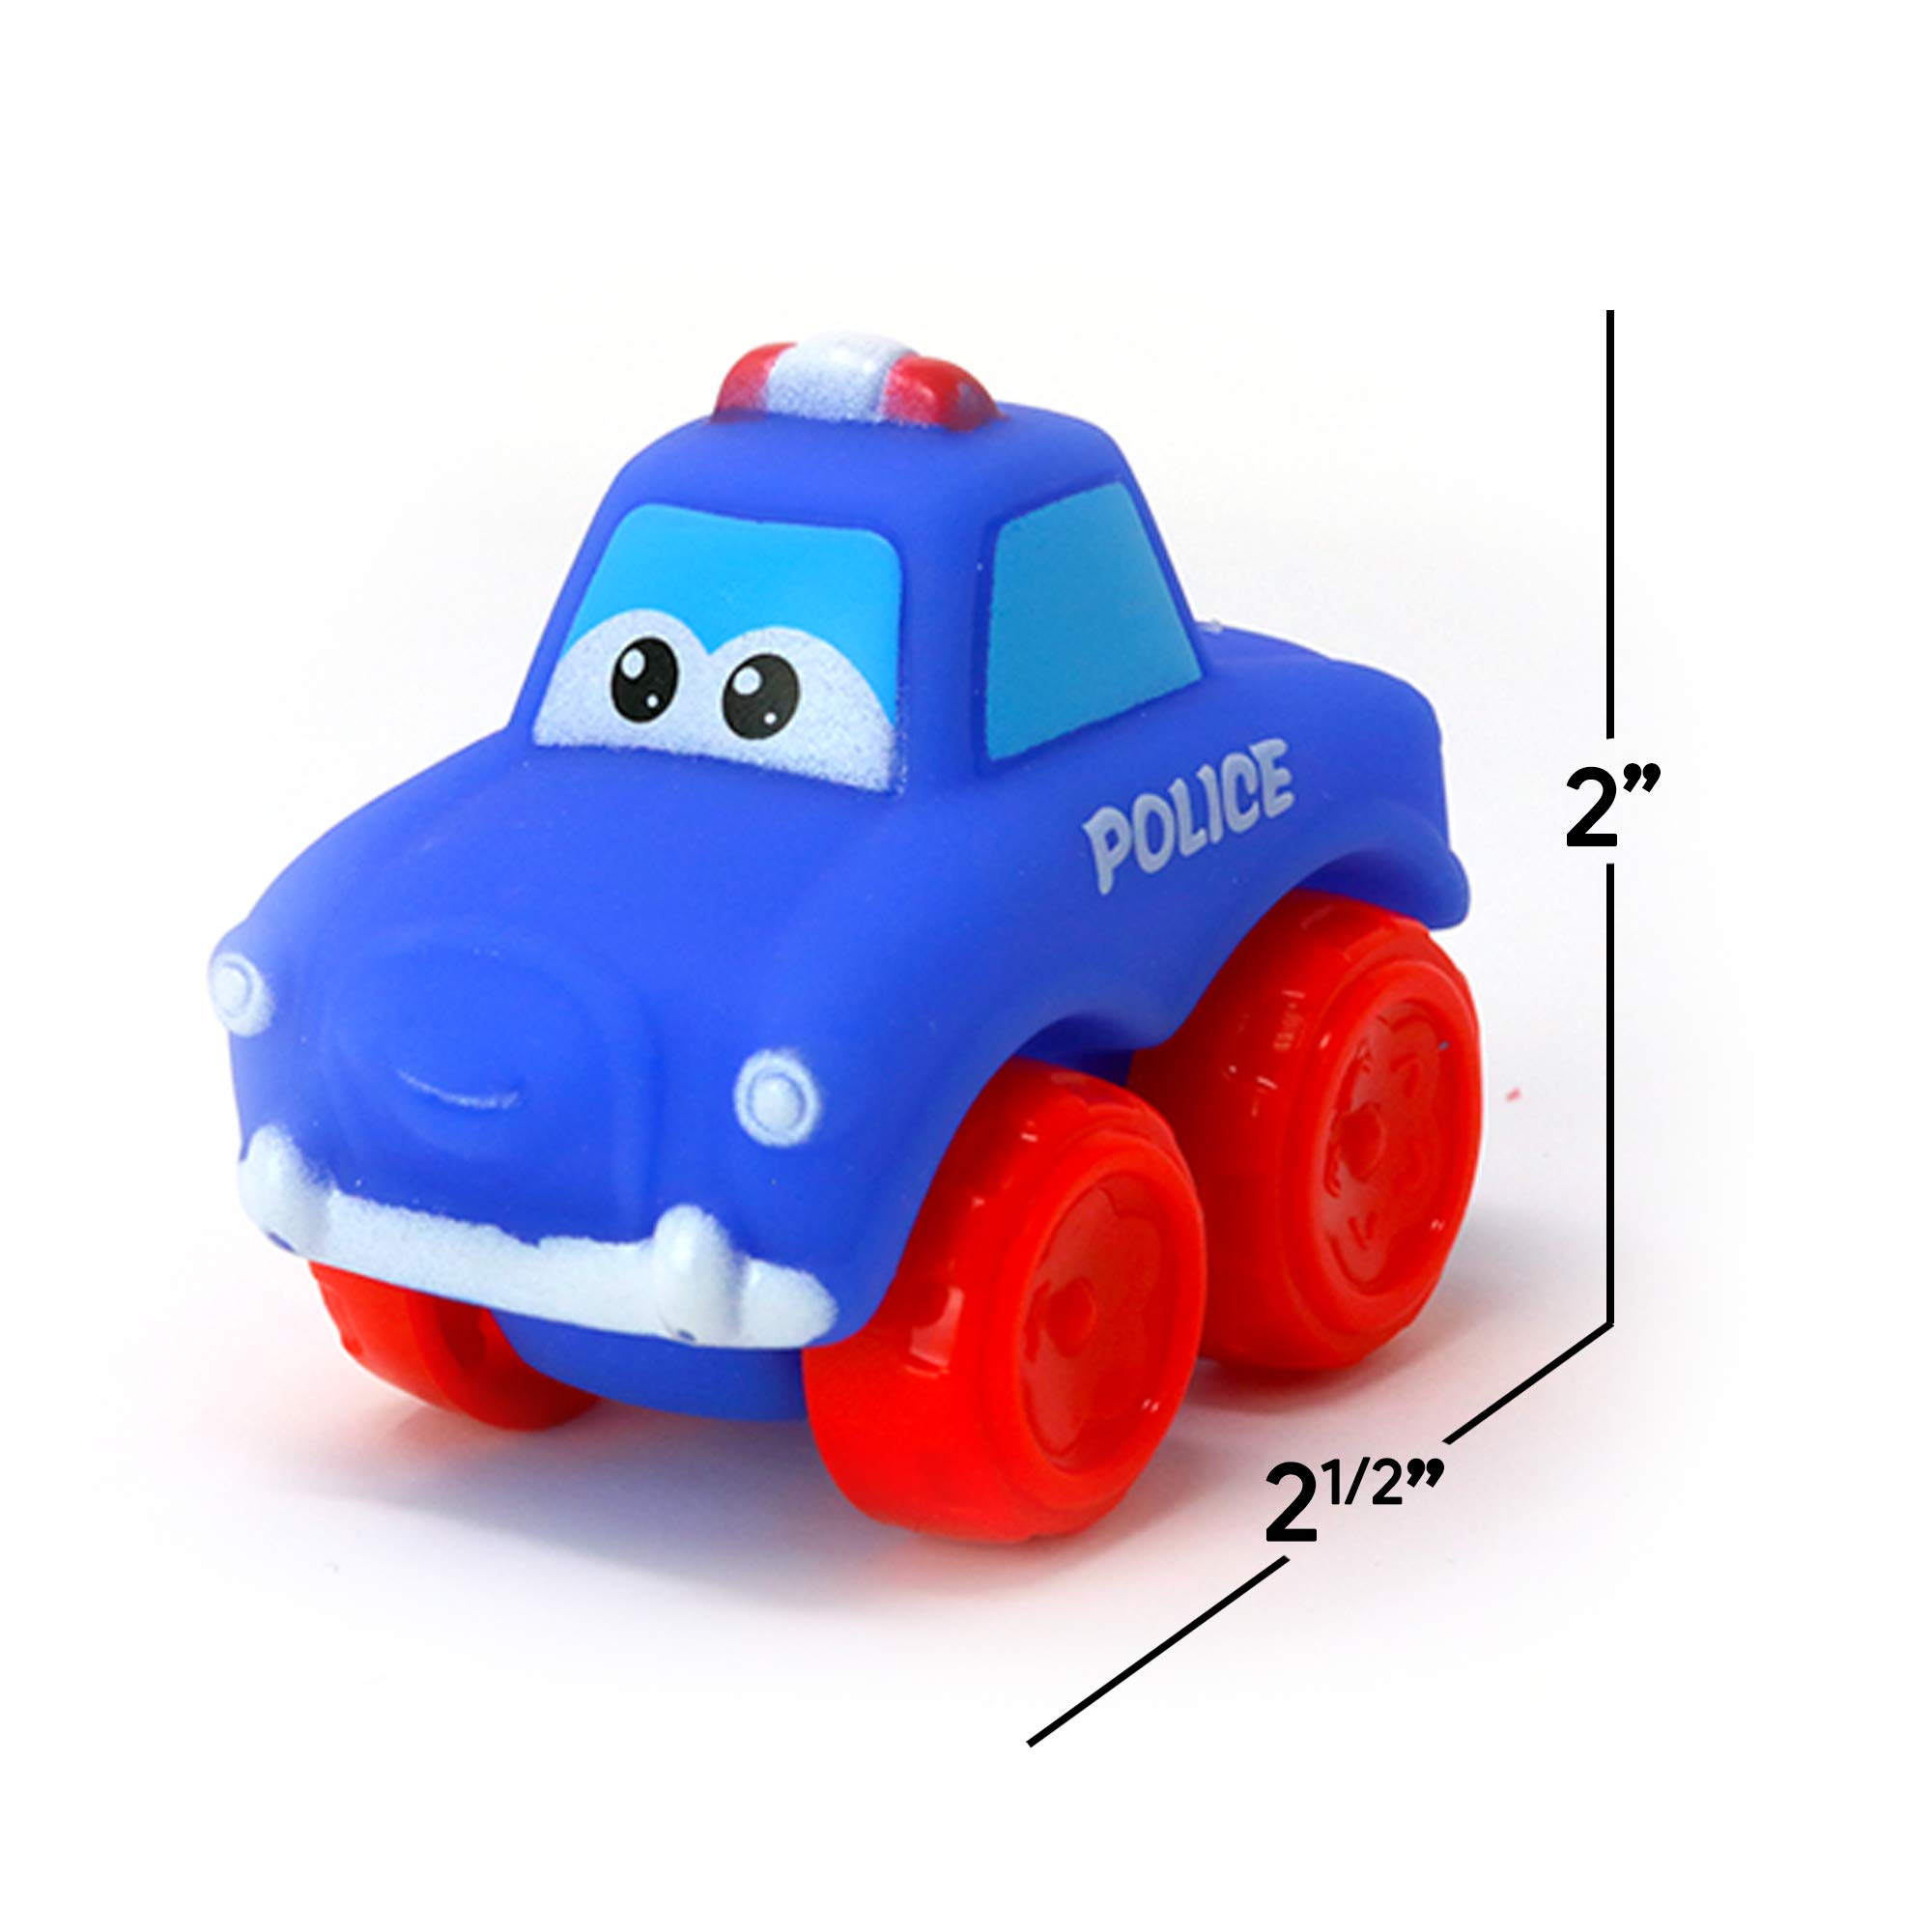 Big Mo's Toys Baby Cars - Soft Rubber Toy Vehicles for Babies and Toddlers - 12 Pieces by Big Mo's Toys (Image #7)